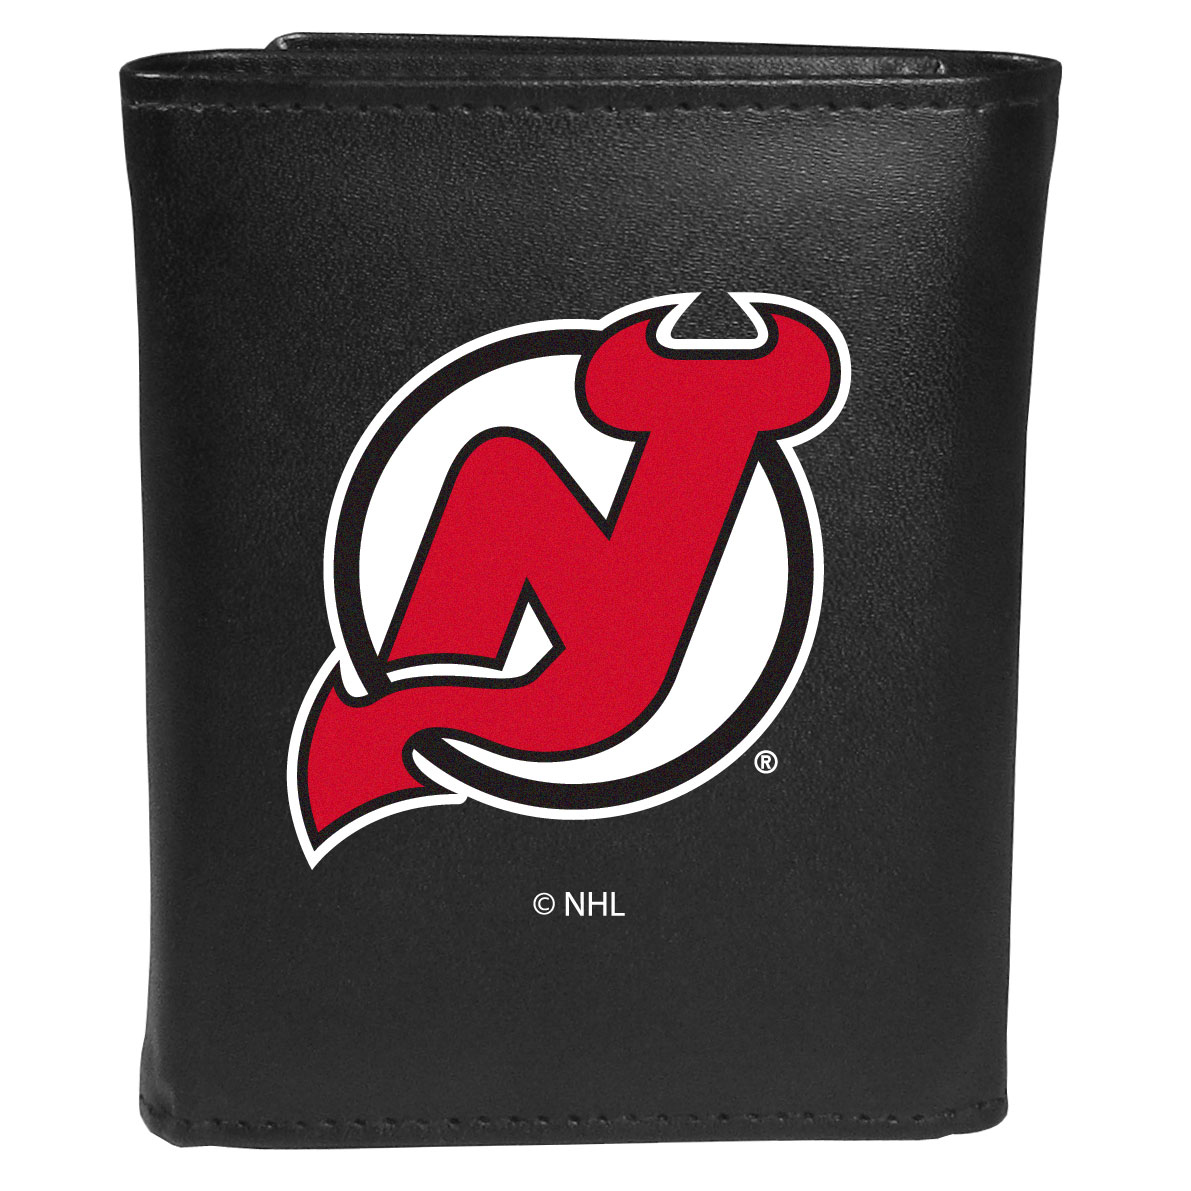 New Jersey Devils® Leather Tri-fold Wallet, Large Logo - Our classic fine leather tri-fold wallet is meticulously crafted with genuine leather that will age beautifully so you will have a quality wallet for years to come. This is fan apparel at its finest. The wallet is packed with organizational  features; lots of credit card slots, large billfold pocket, and a window ID slot. The front of the wallet features an extra large New Jersey Devils® printed logo.